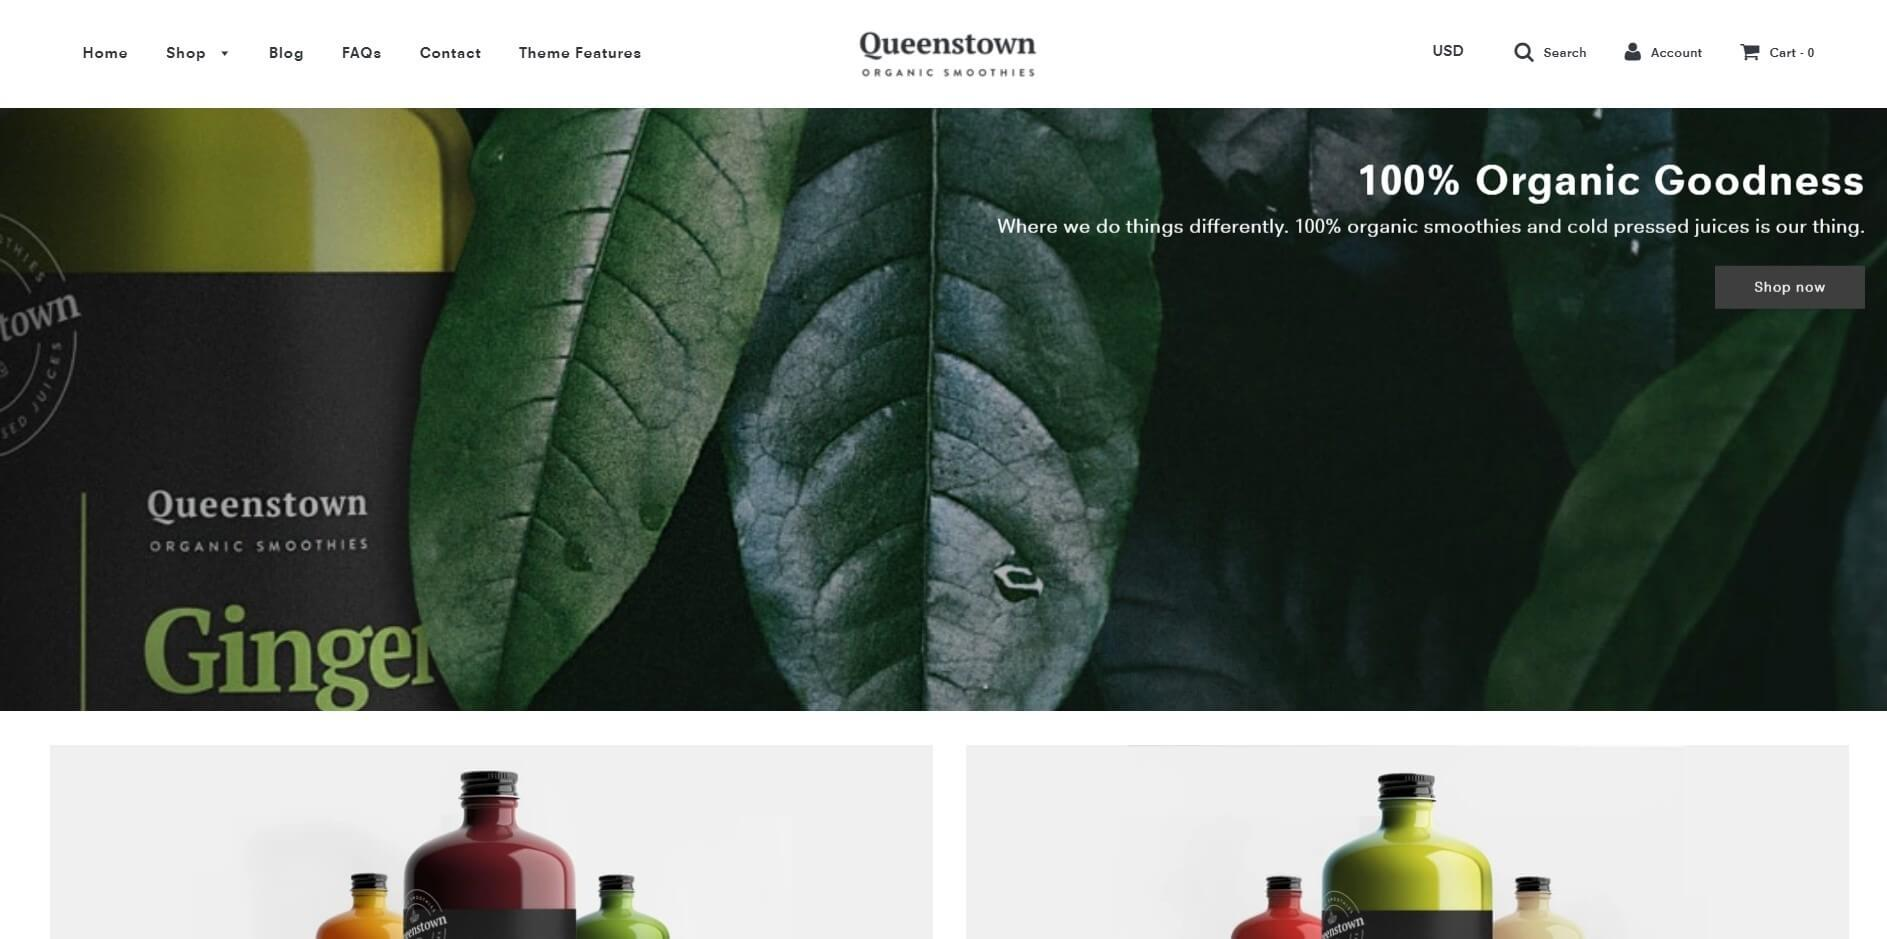 Flow Shopify theme image